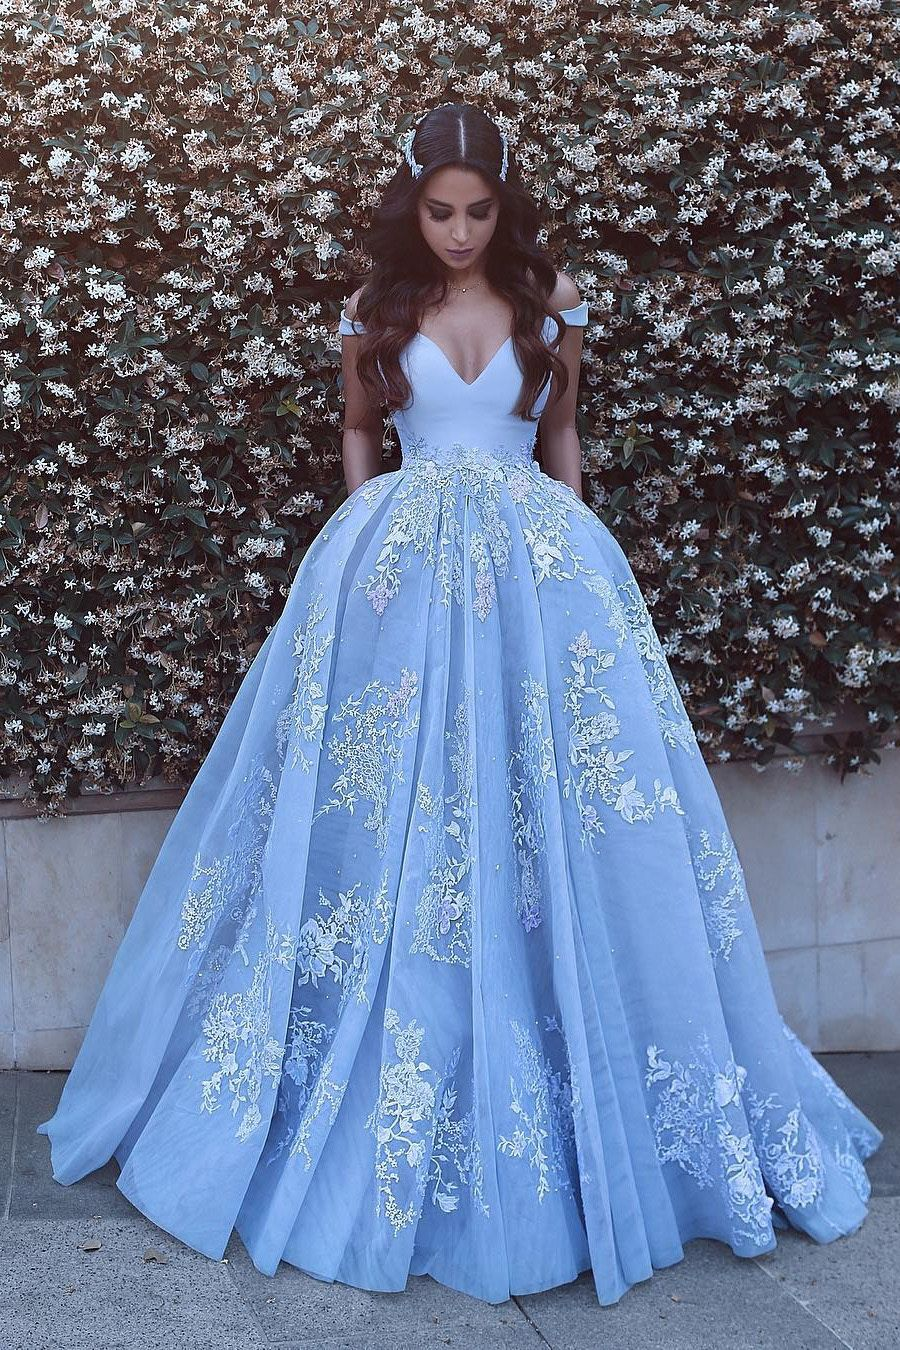 2019 Ball Gown Off The Shoulder Prom Dresses Tulle With Appliques US$ 289.00 BUKP6MA78NS